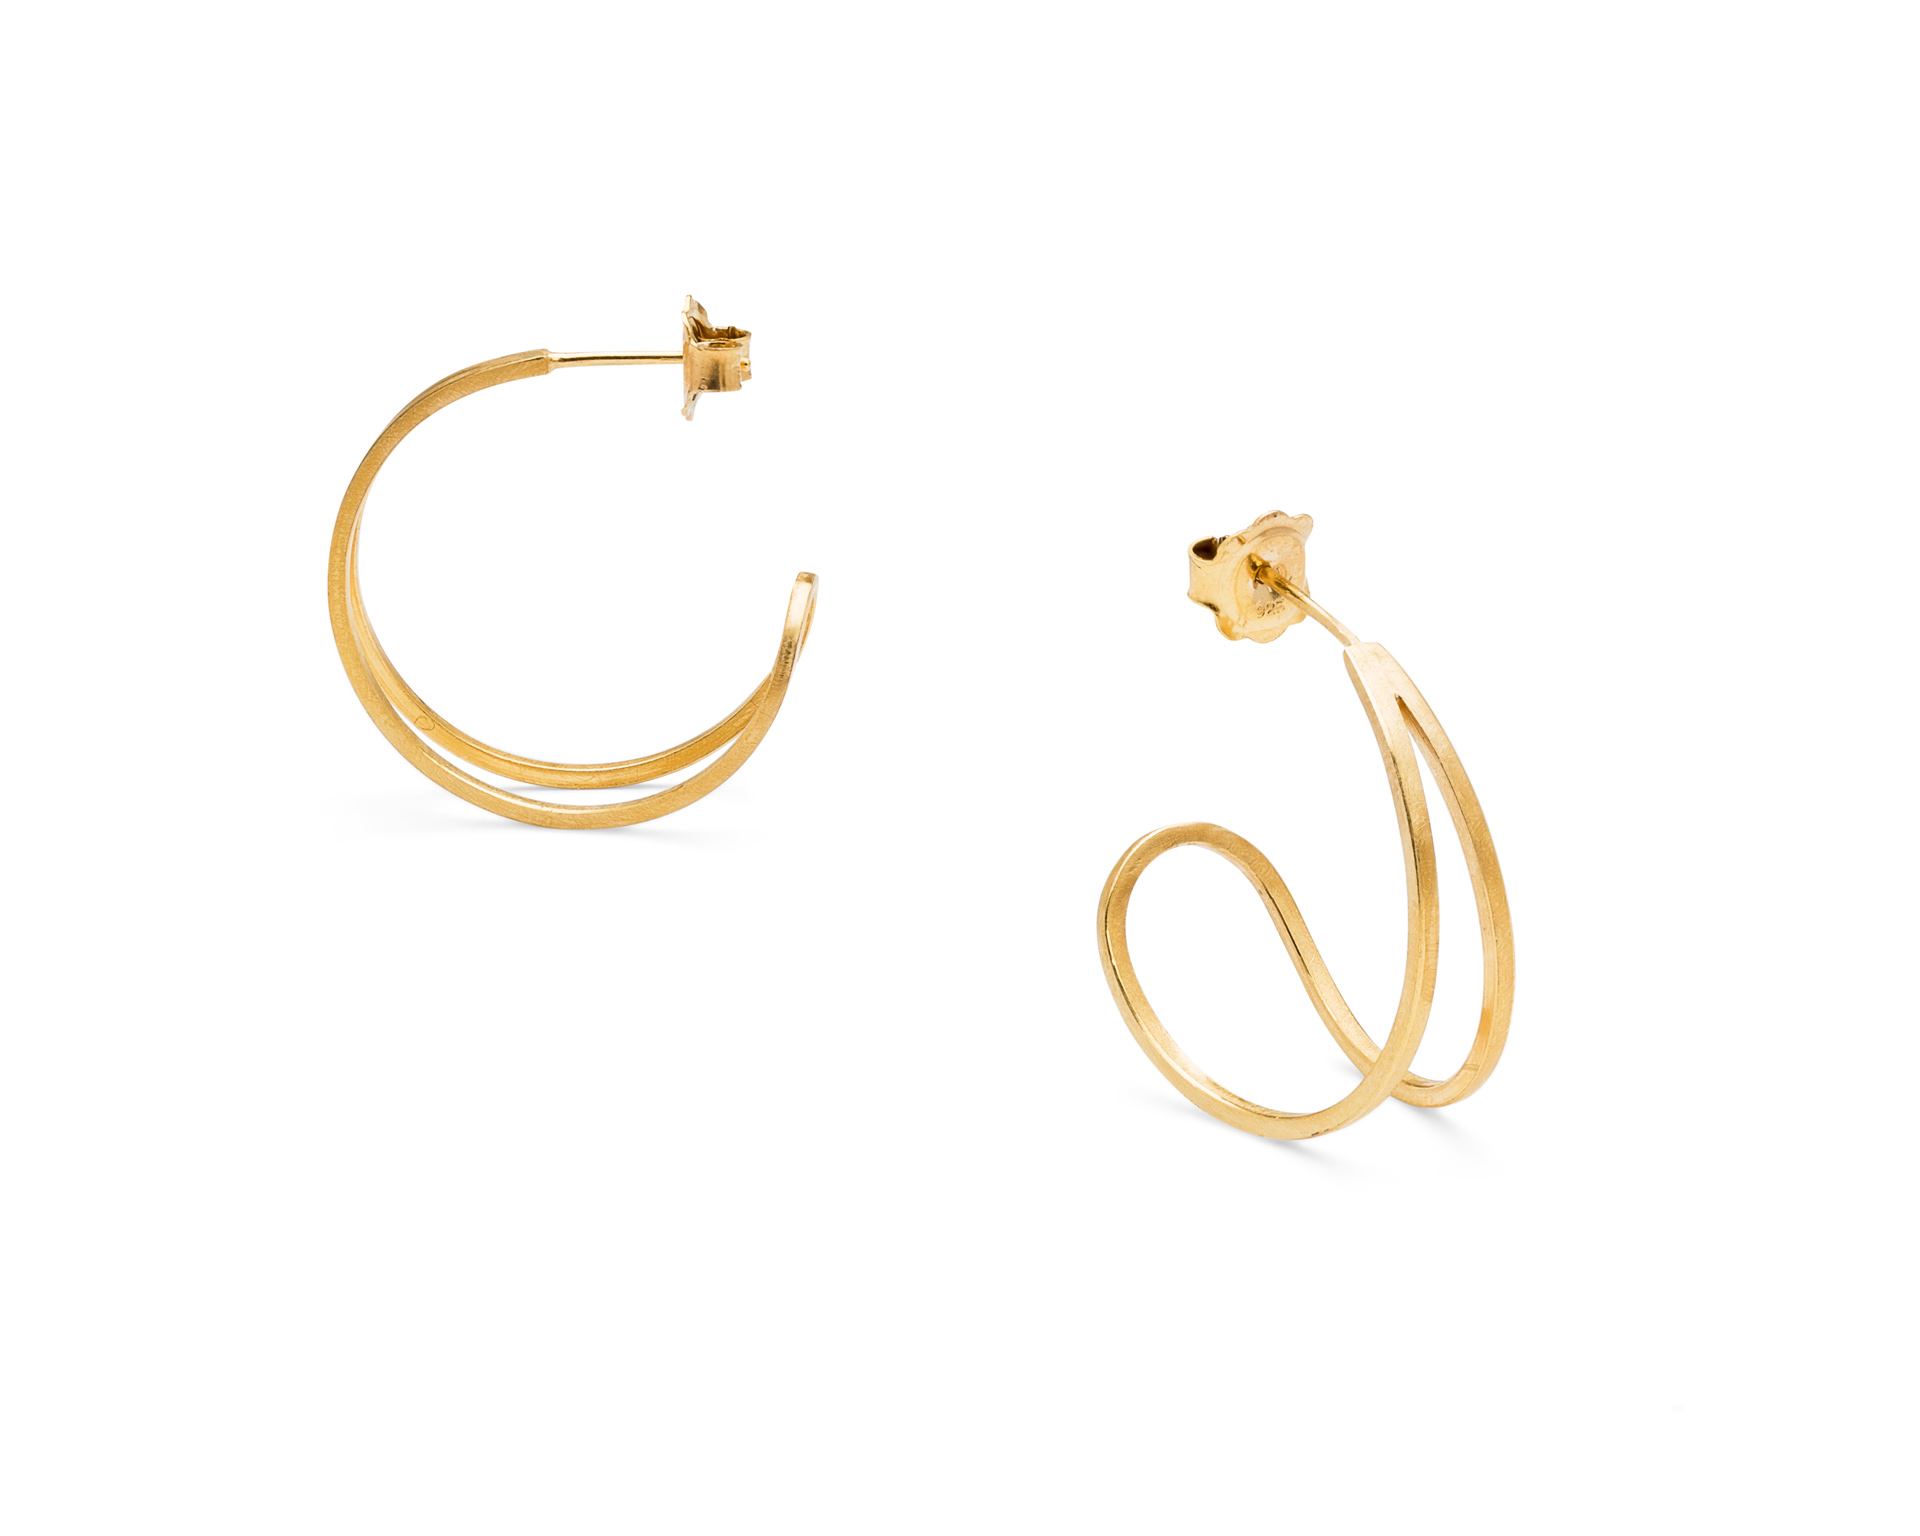 Heather Woof Jewellery. Teardrop hoop earrings in gold vermeil.